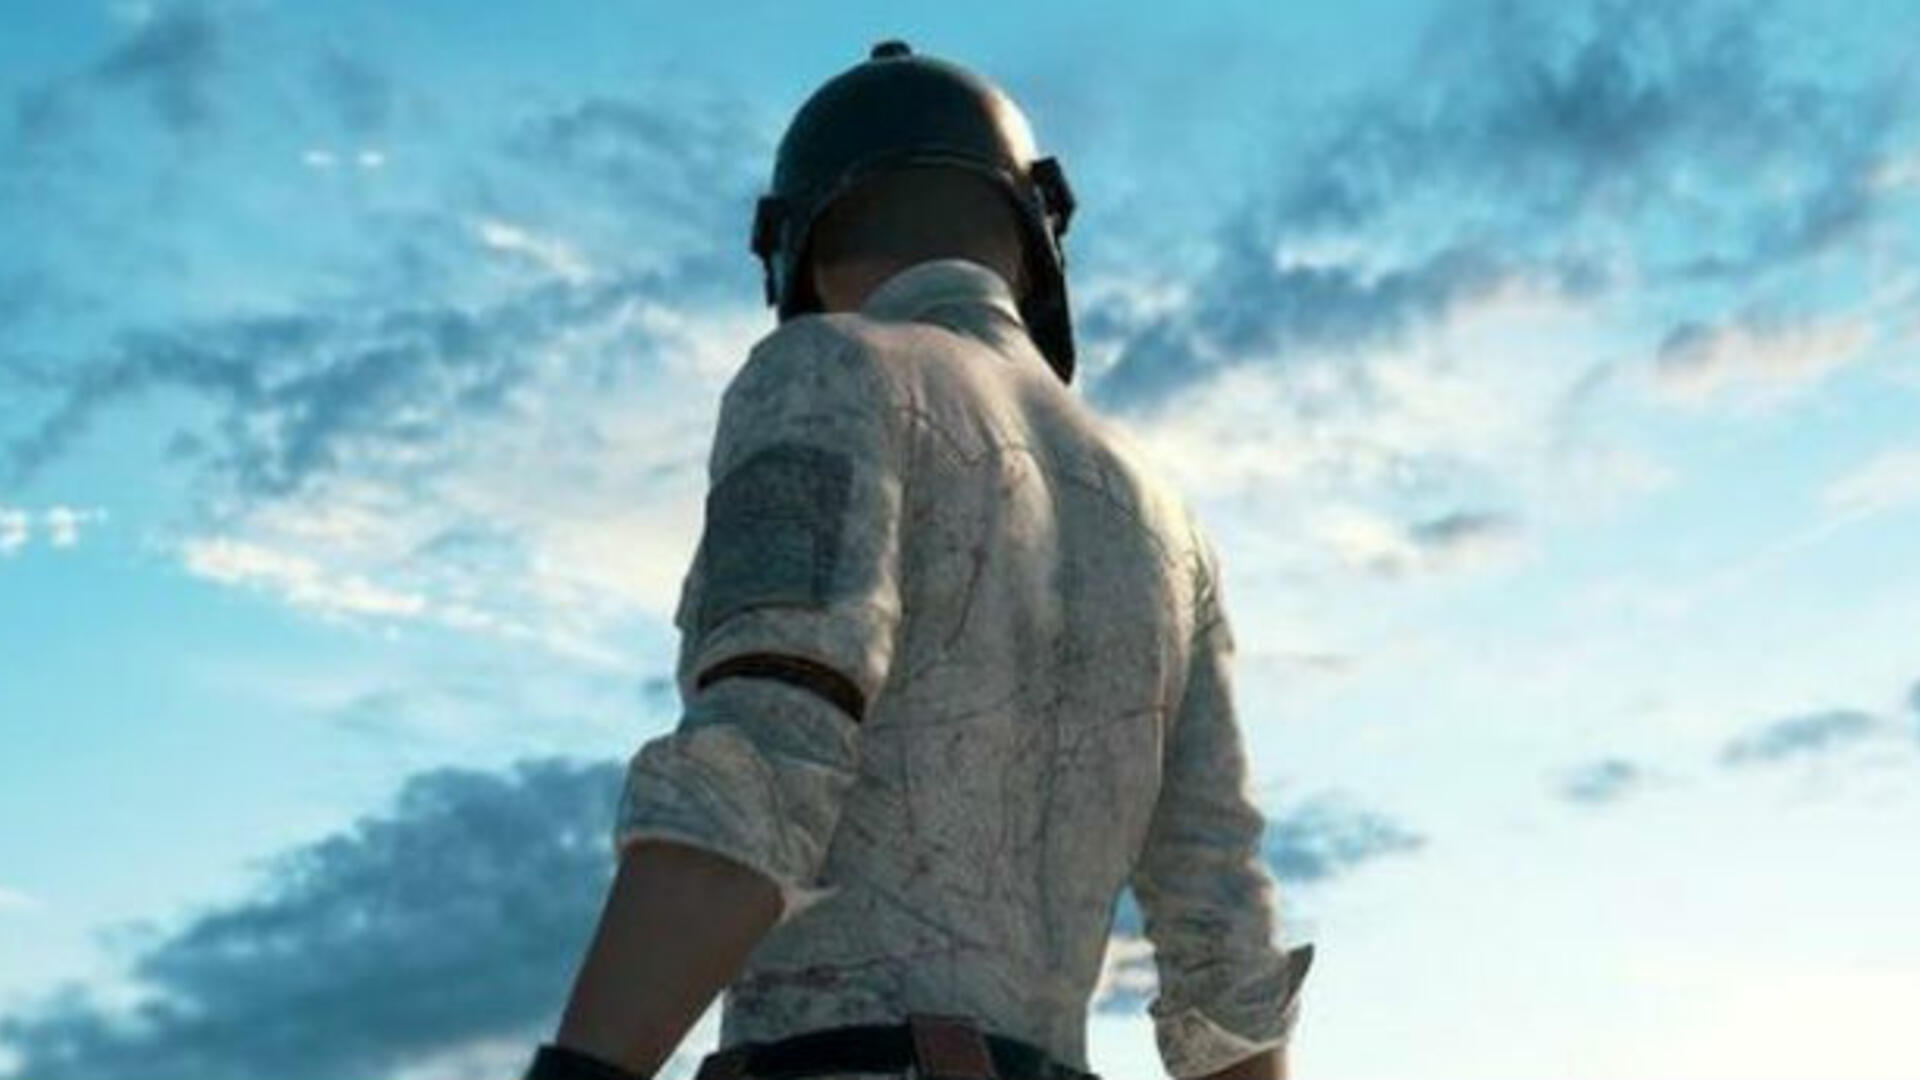 PUBG Creative Director Shows Off Teaser of New 4x4 Map at GDC 2018